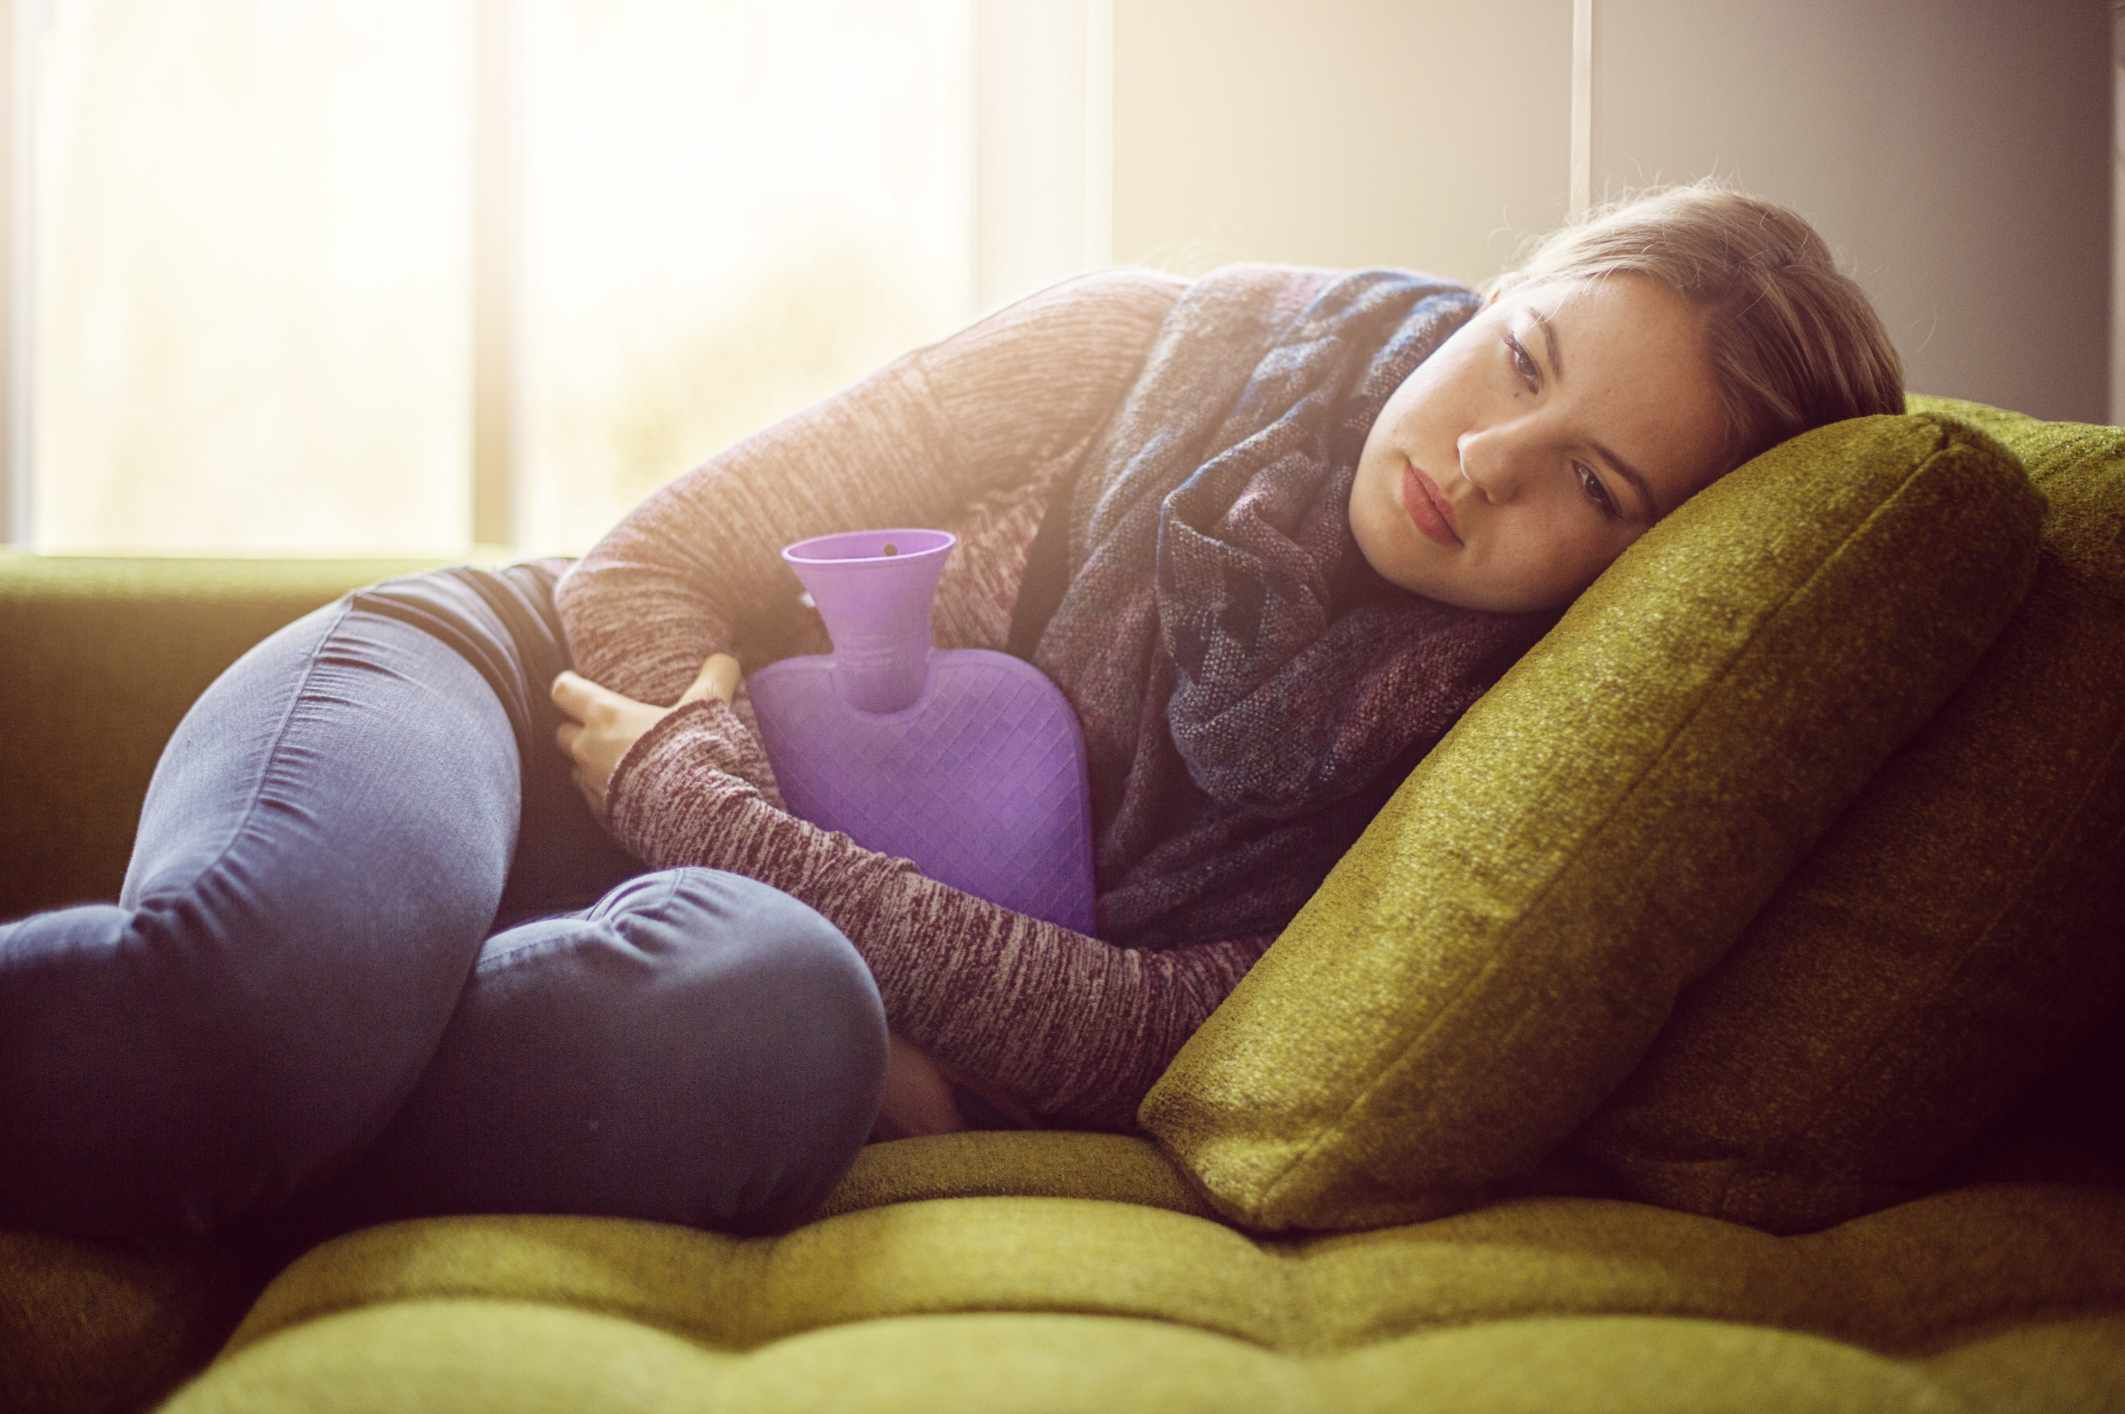 Girl lying on couch with water bottle on stomach